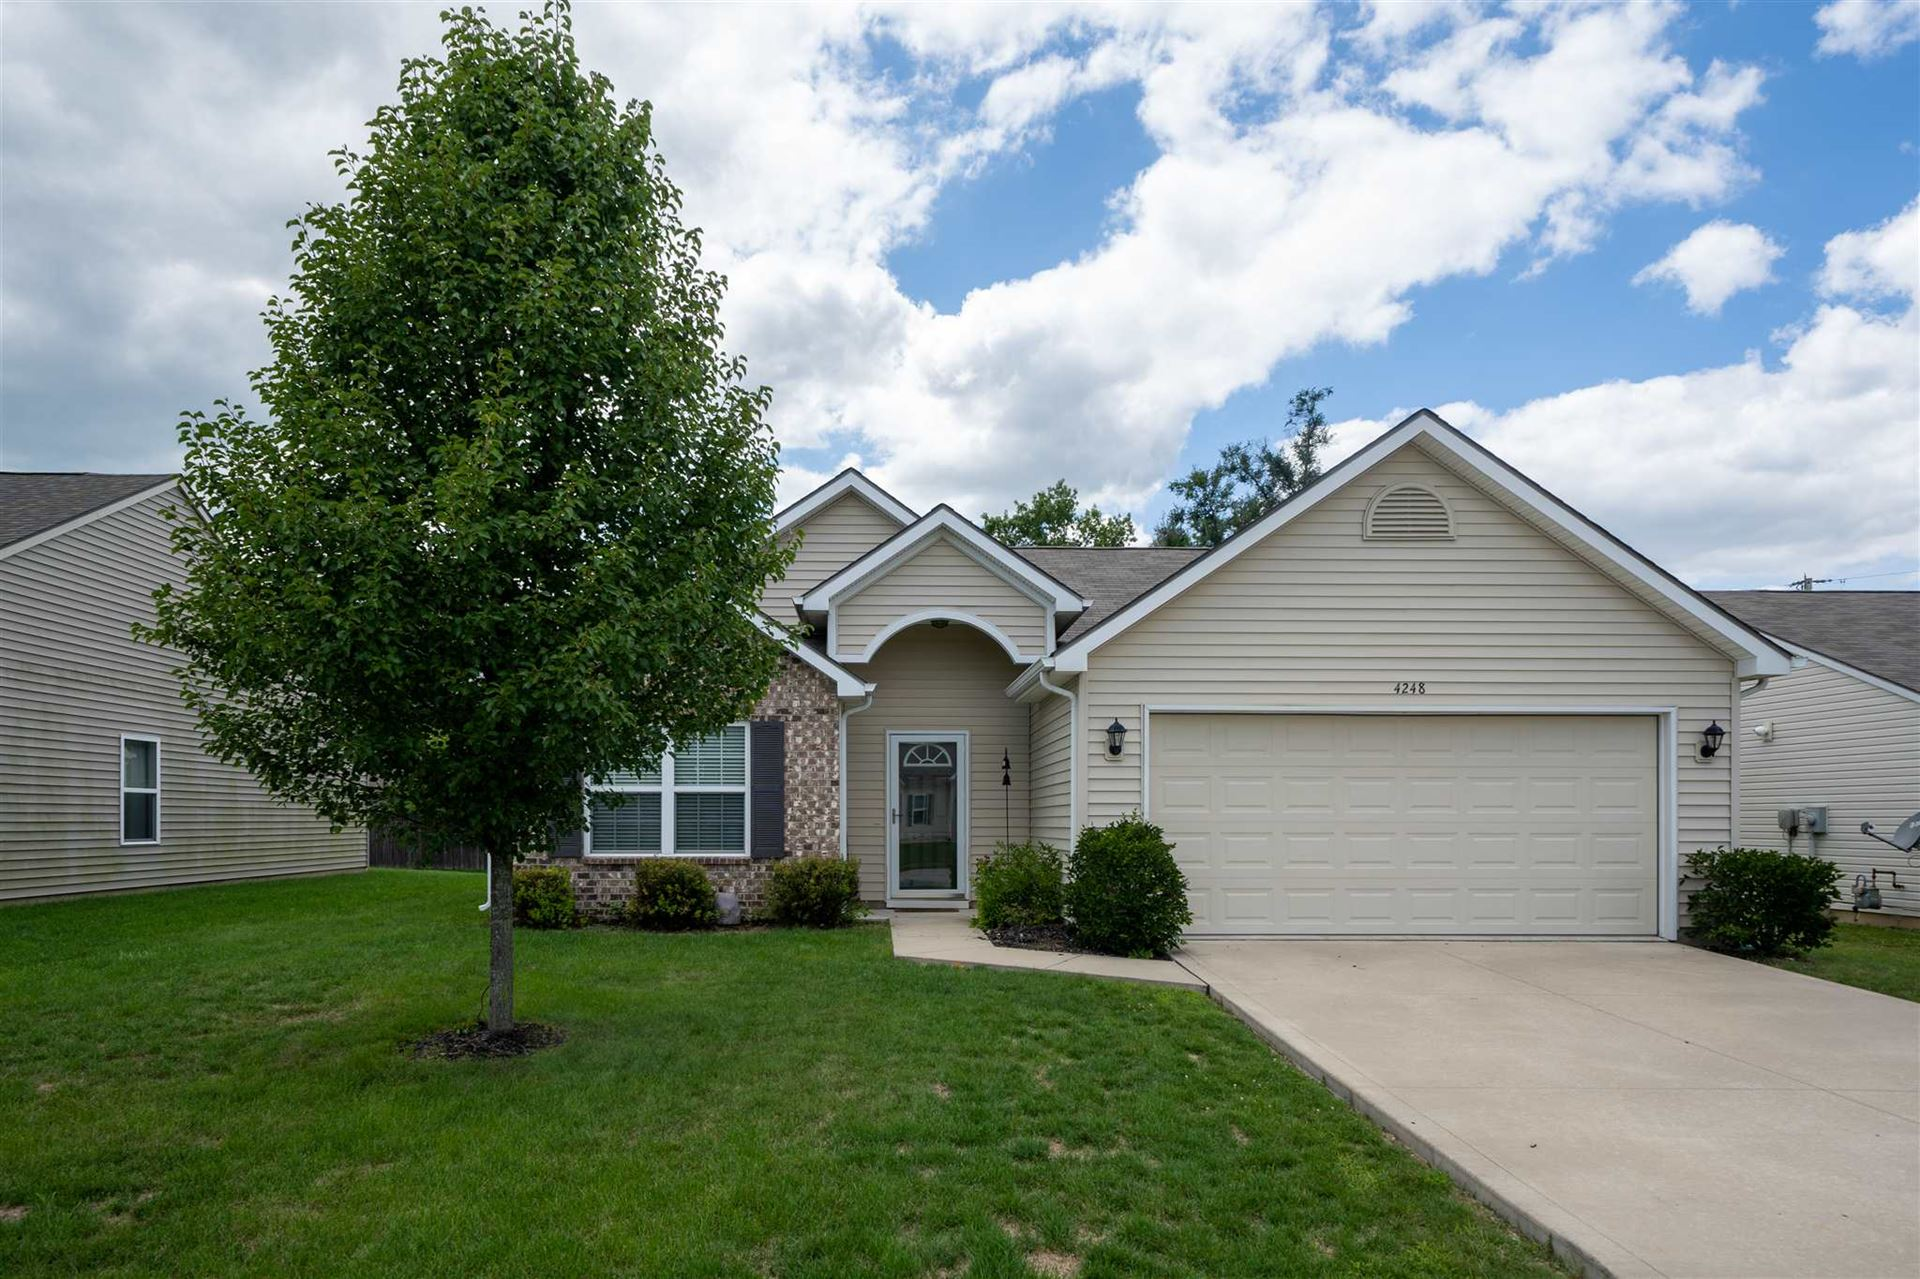 4248 Timber Creek Pkwy, New Haven, IN 46774 - #: 202030856